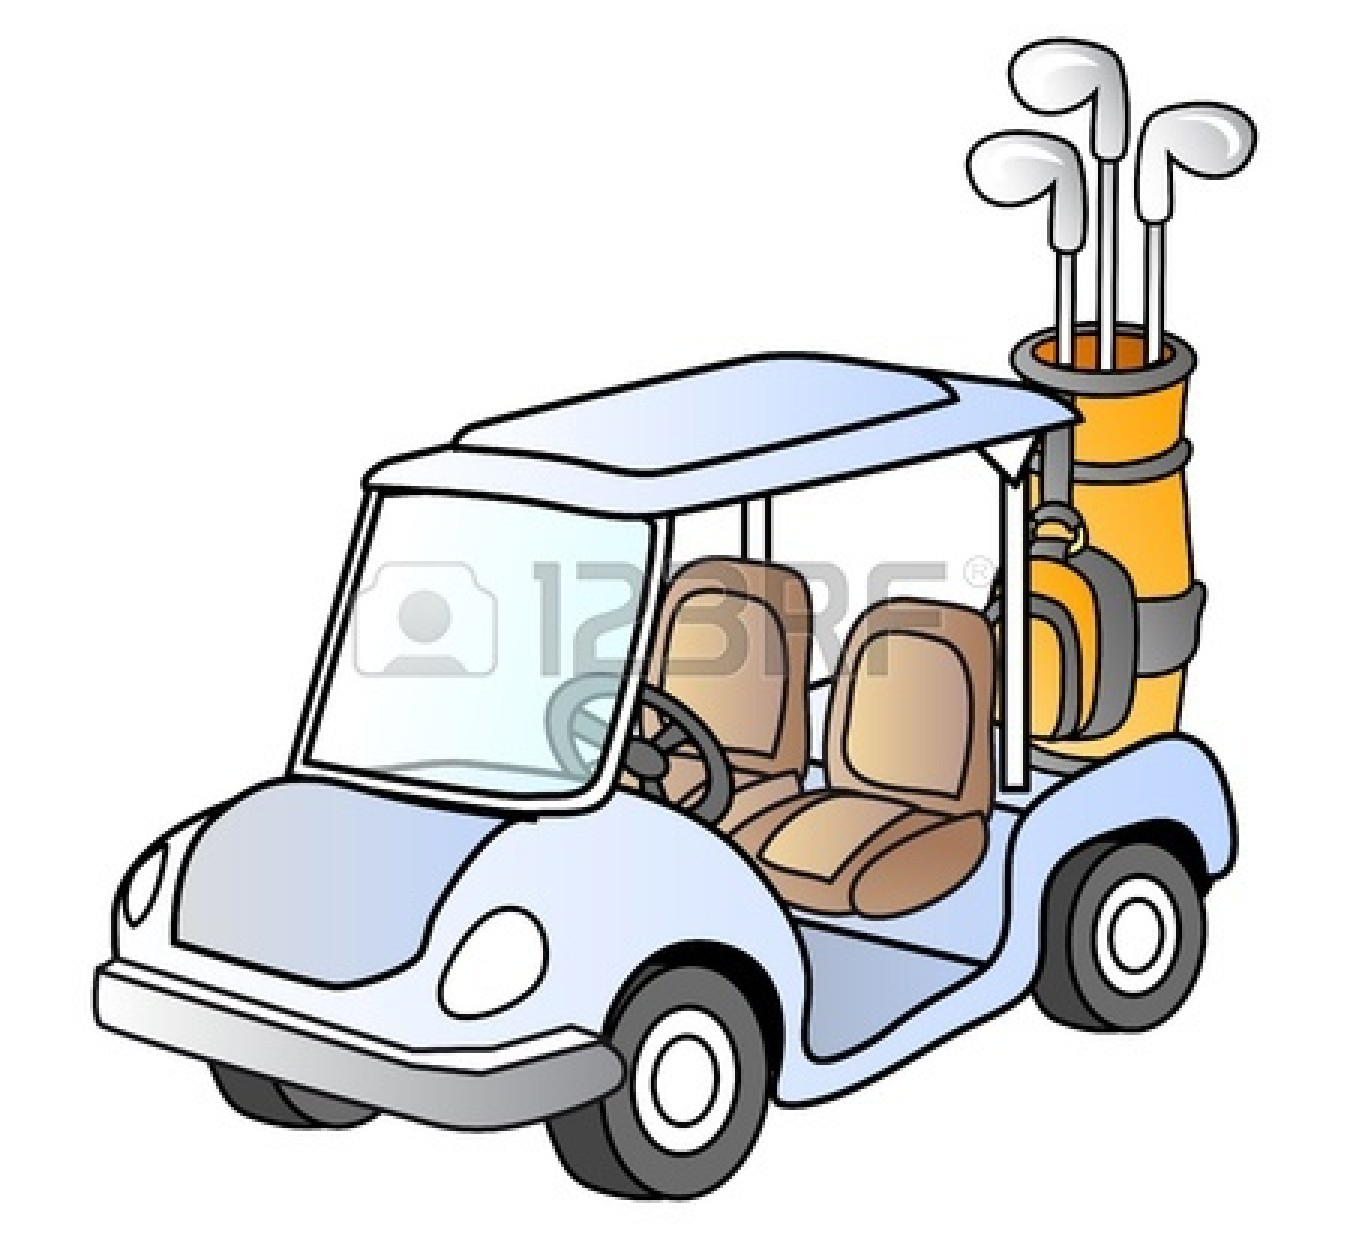 golf cart clip art black and white clipart panda free